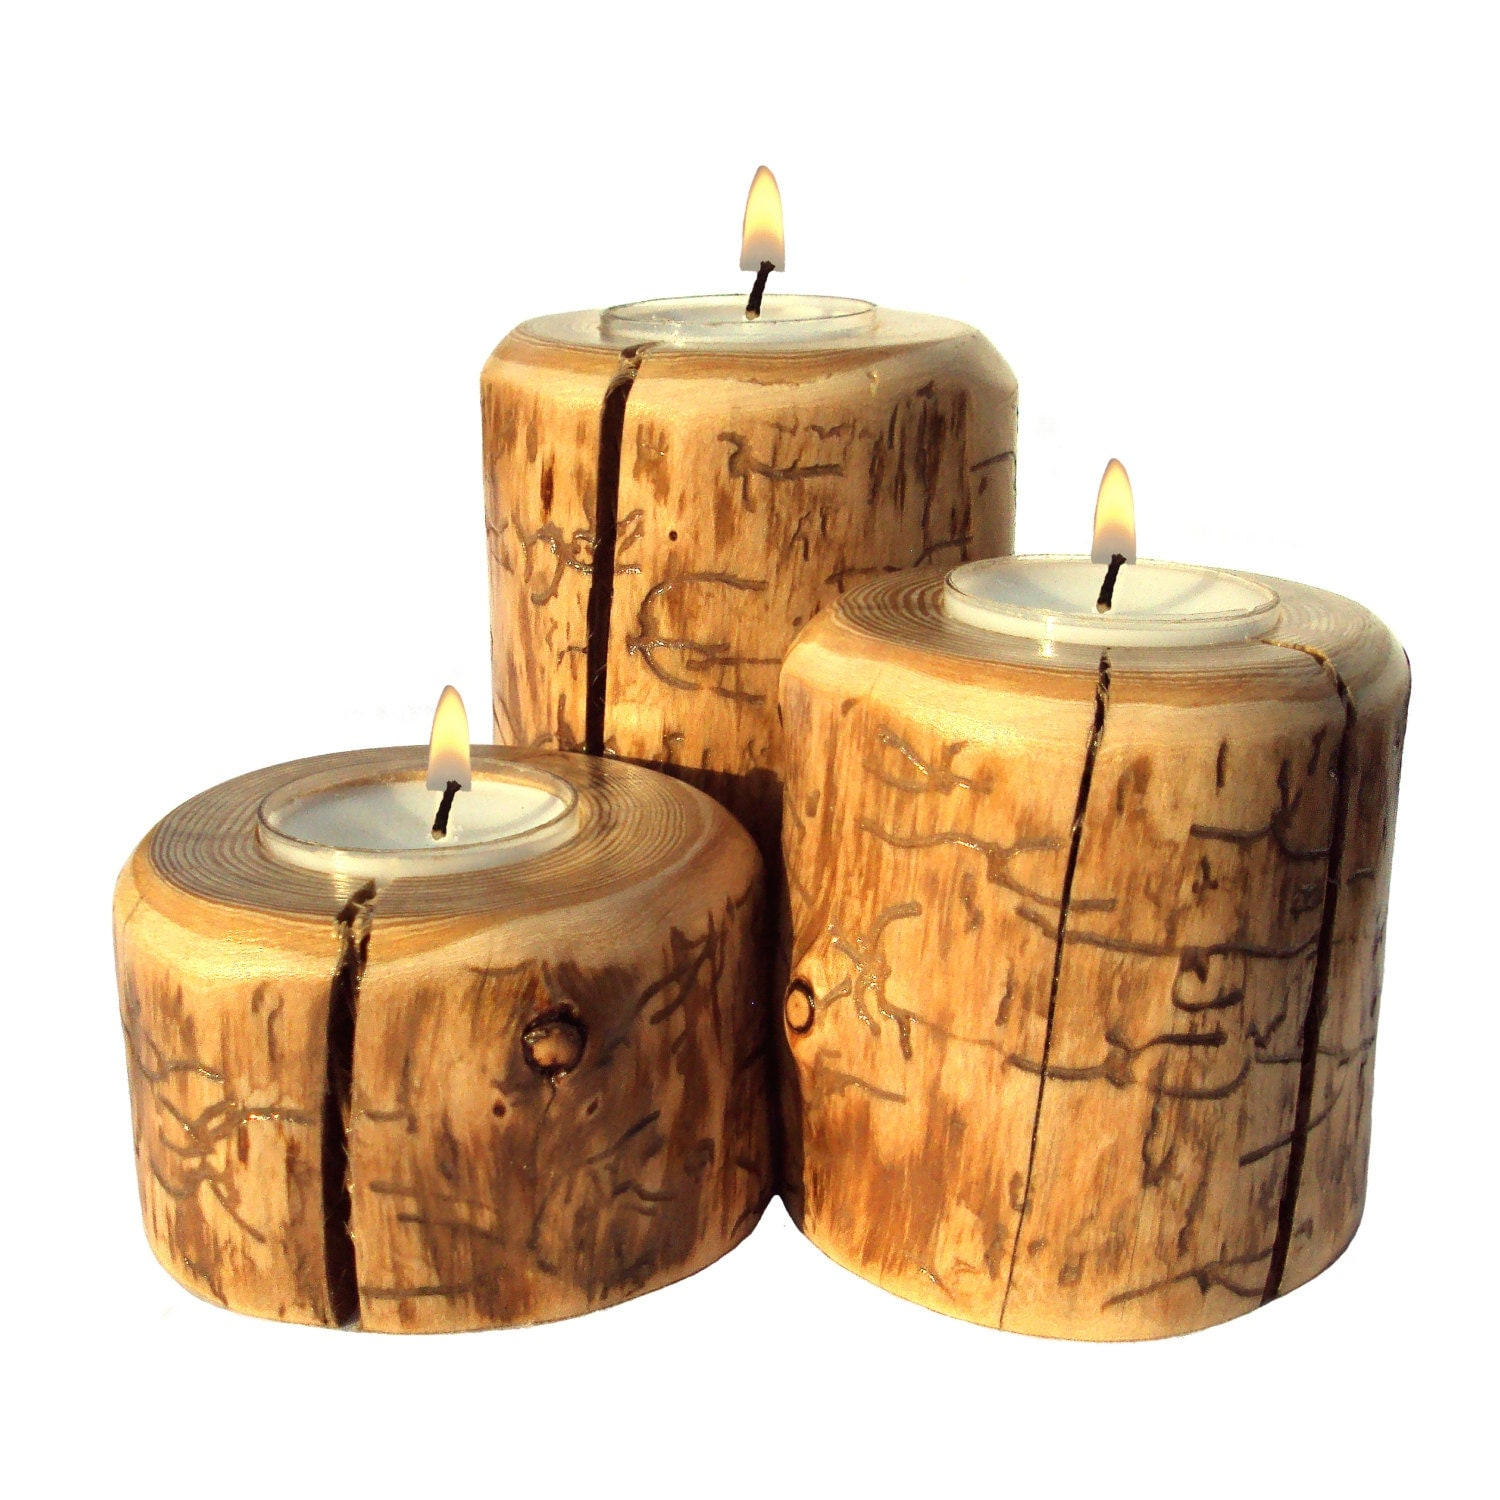 Rustic Wooden Tea Light Holder Free Shipping: Red Pine Candle Set Log Candle Holder Rustic Candle Set Red